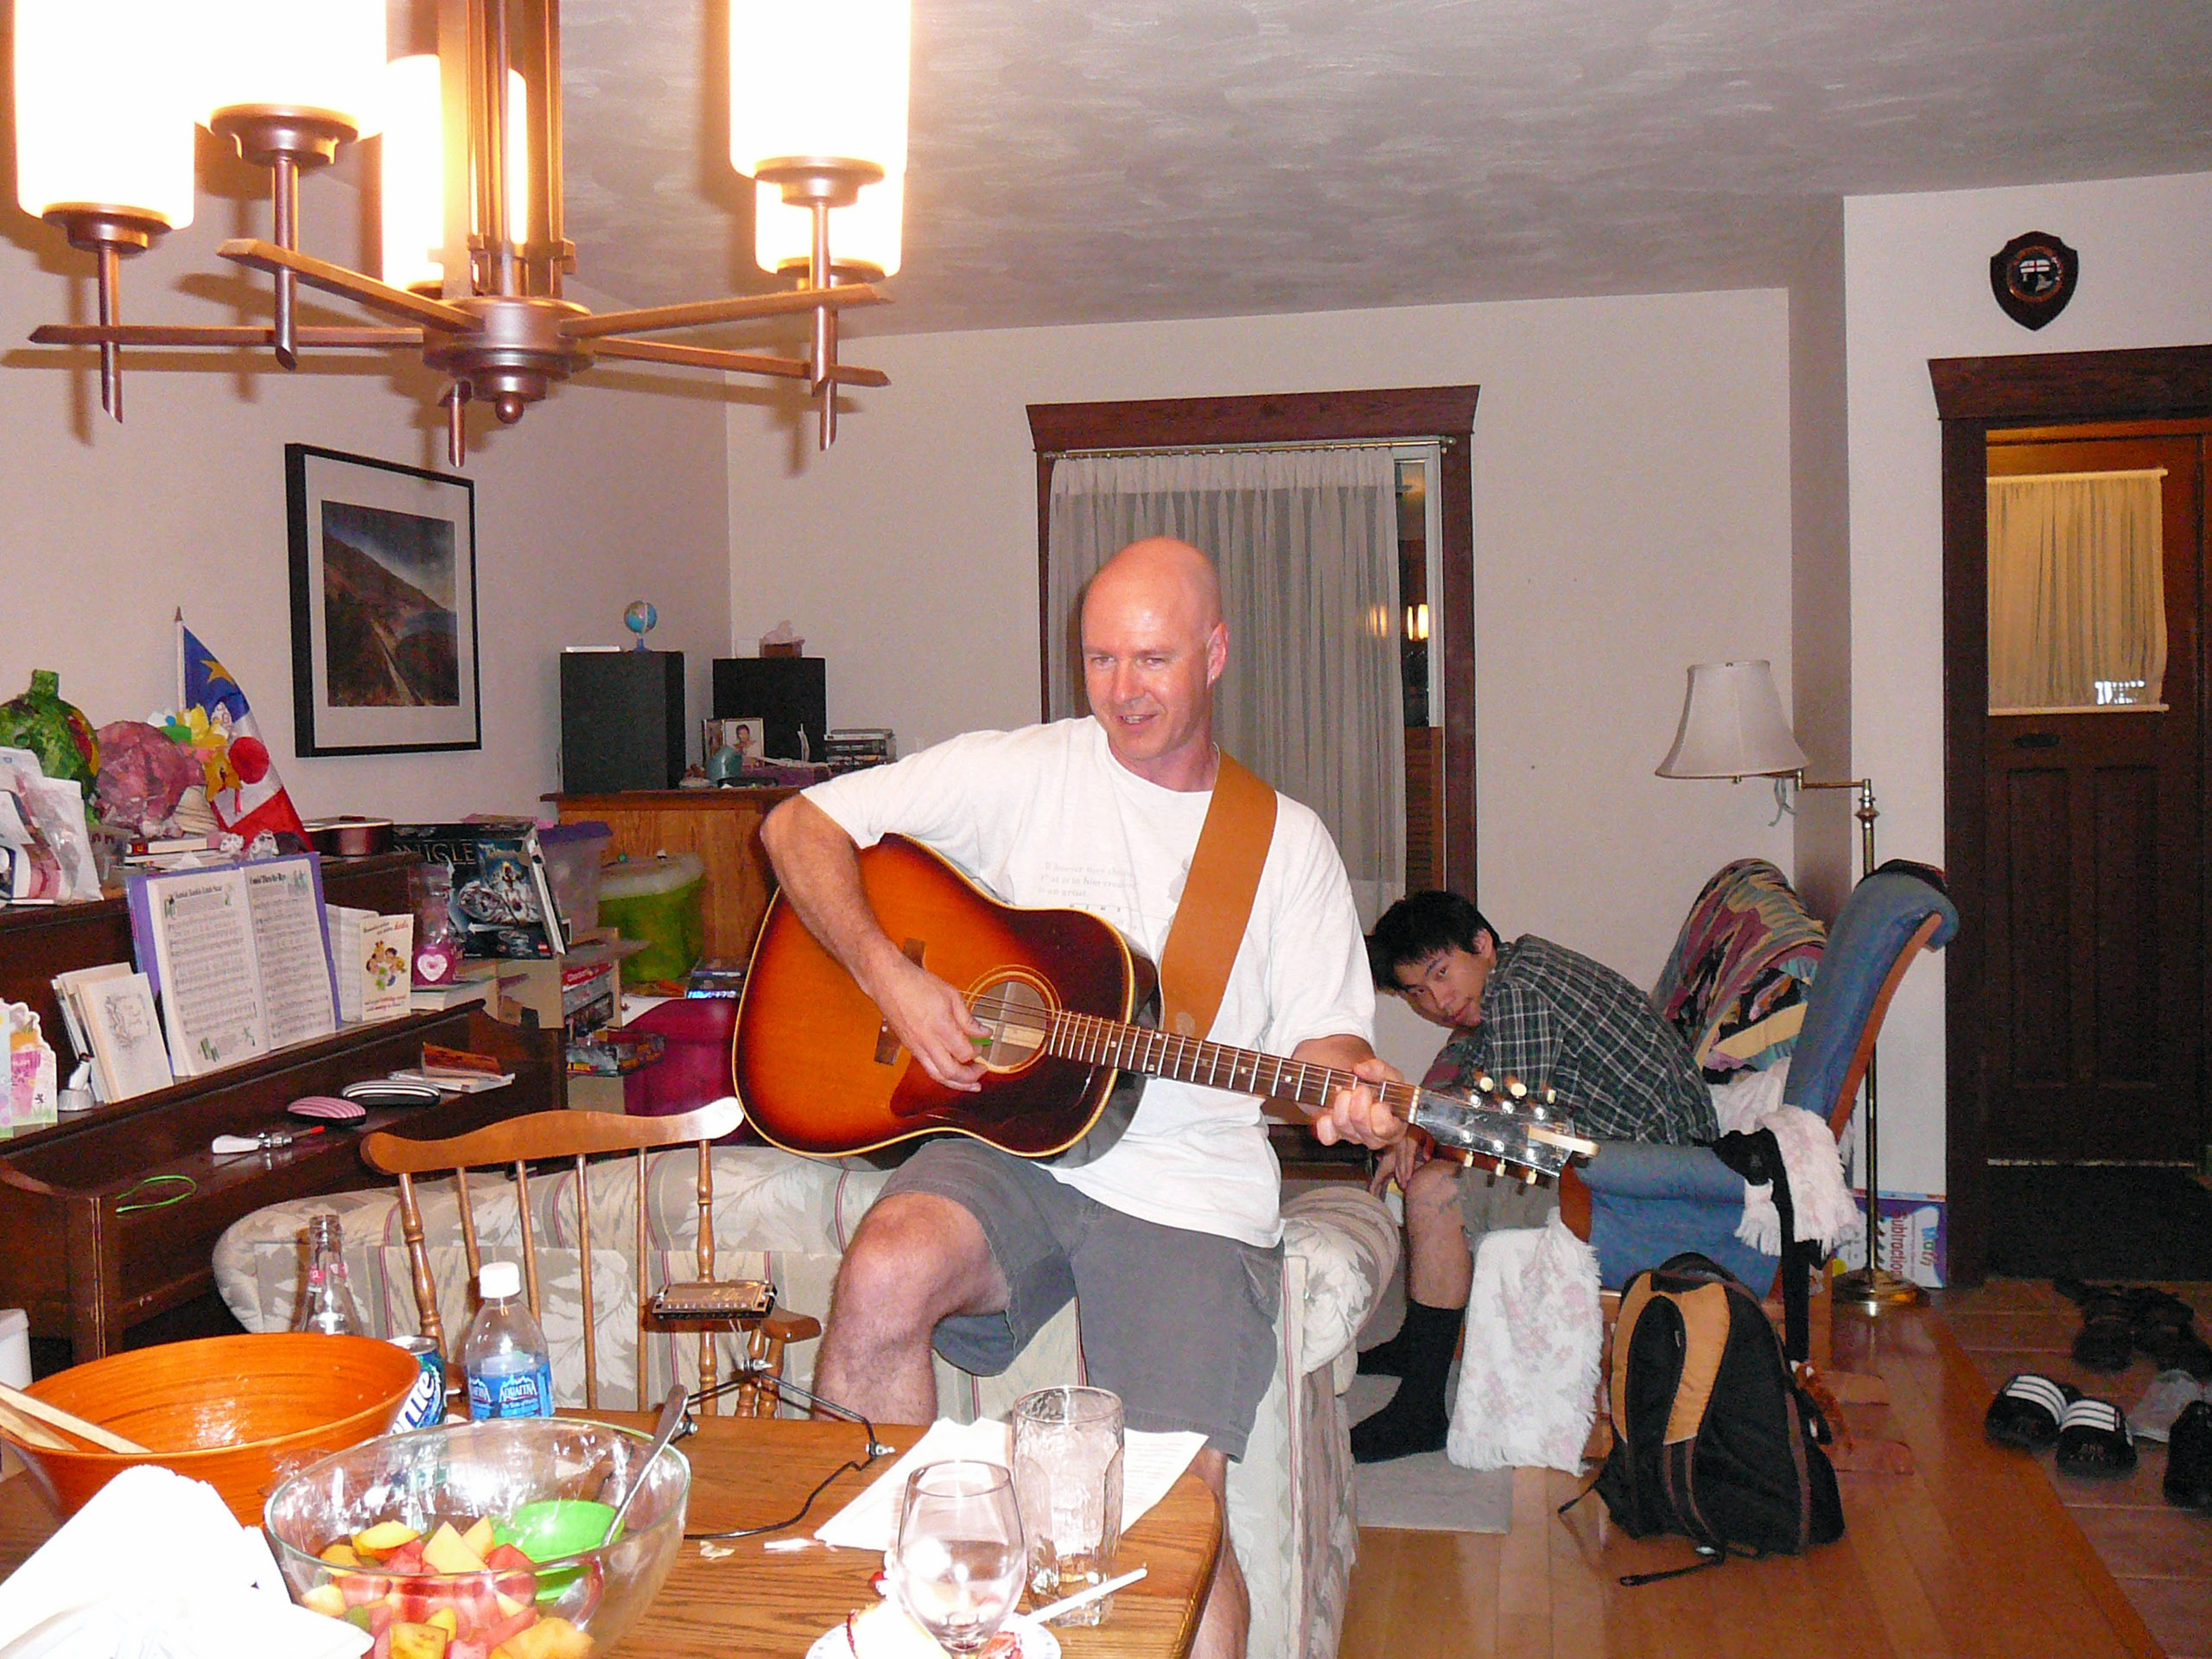 Brent sings a few songs to clear the room